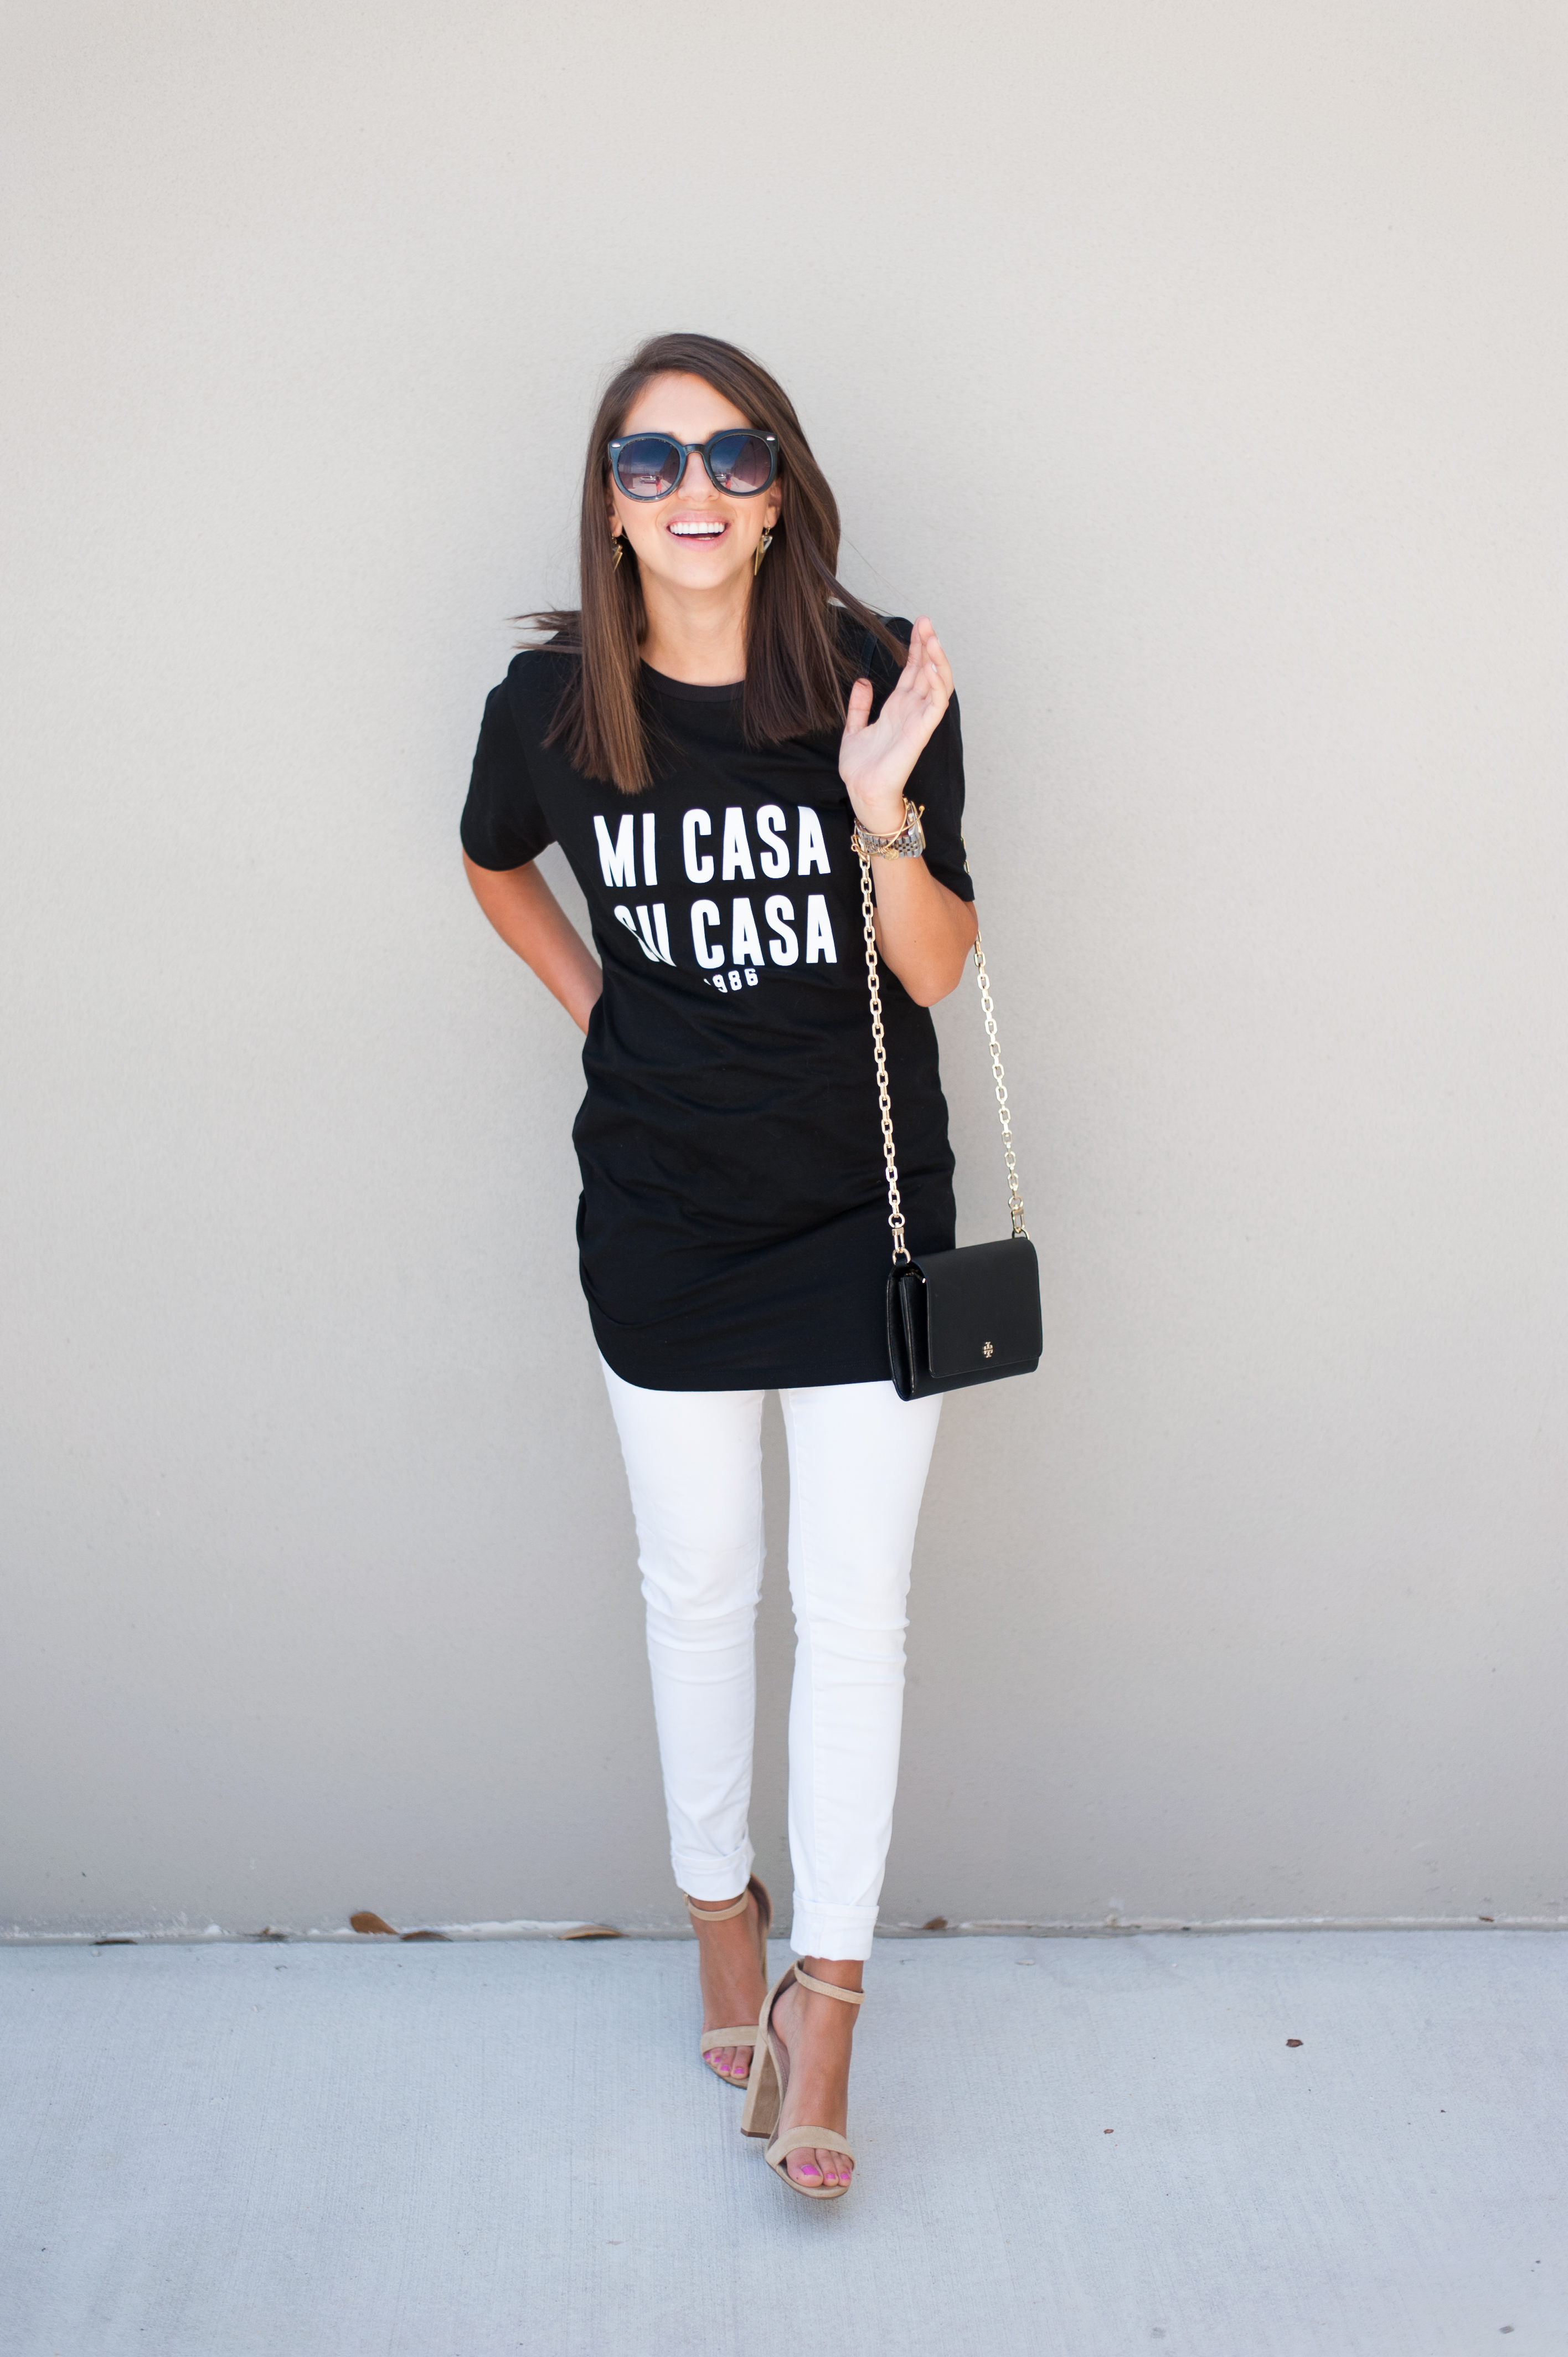 Dress Up Buttercup // A Houston-based fashion and inspiration blog developed to daily inspire your own personal style by Dede Raad | My Casa Su Casa